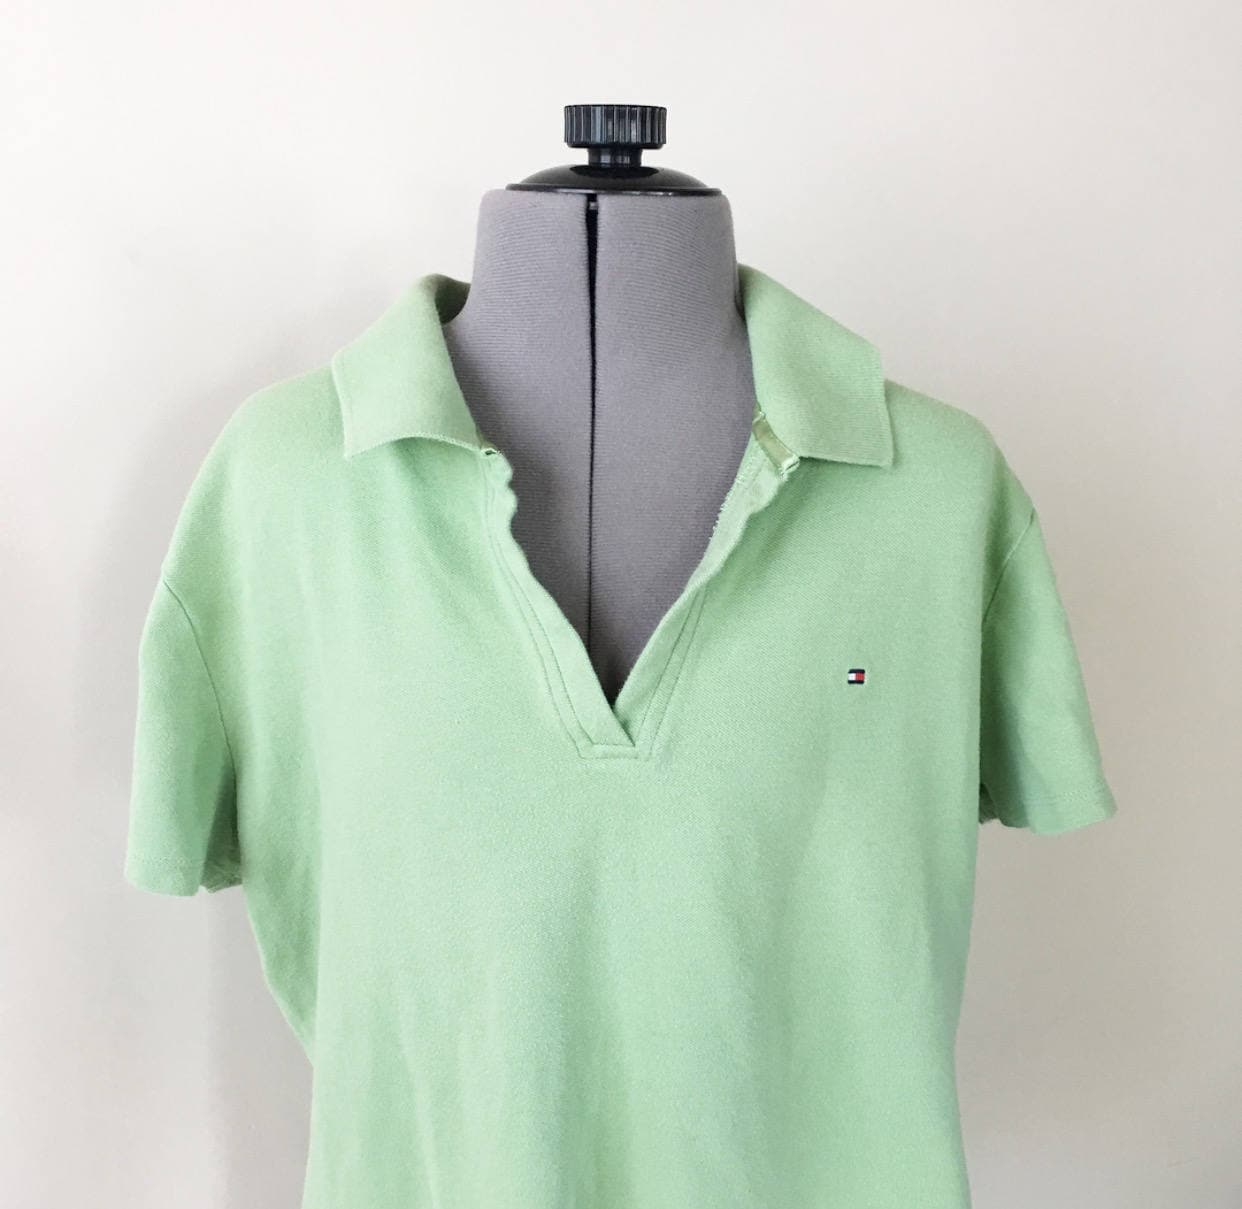 Vintage 90s Tommy Hilfiger Polo Shirt Mint Green Pastel Etsy